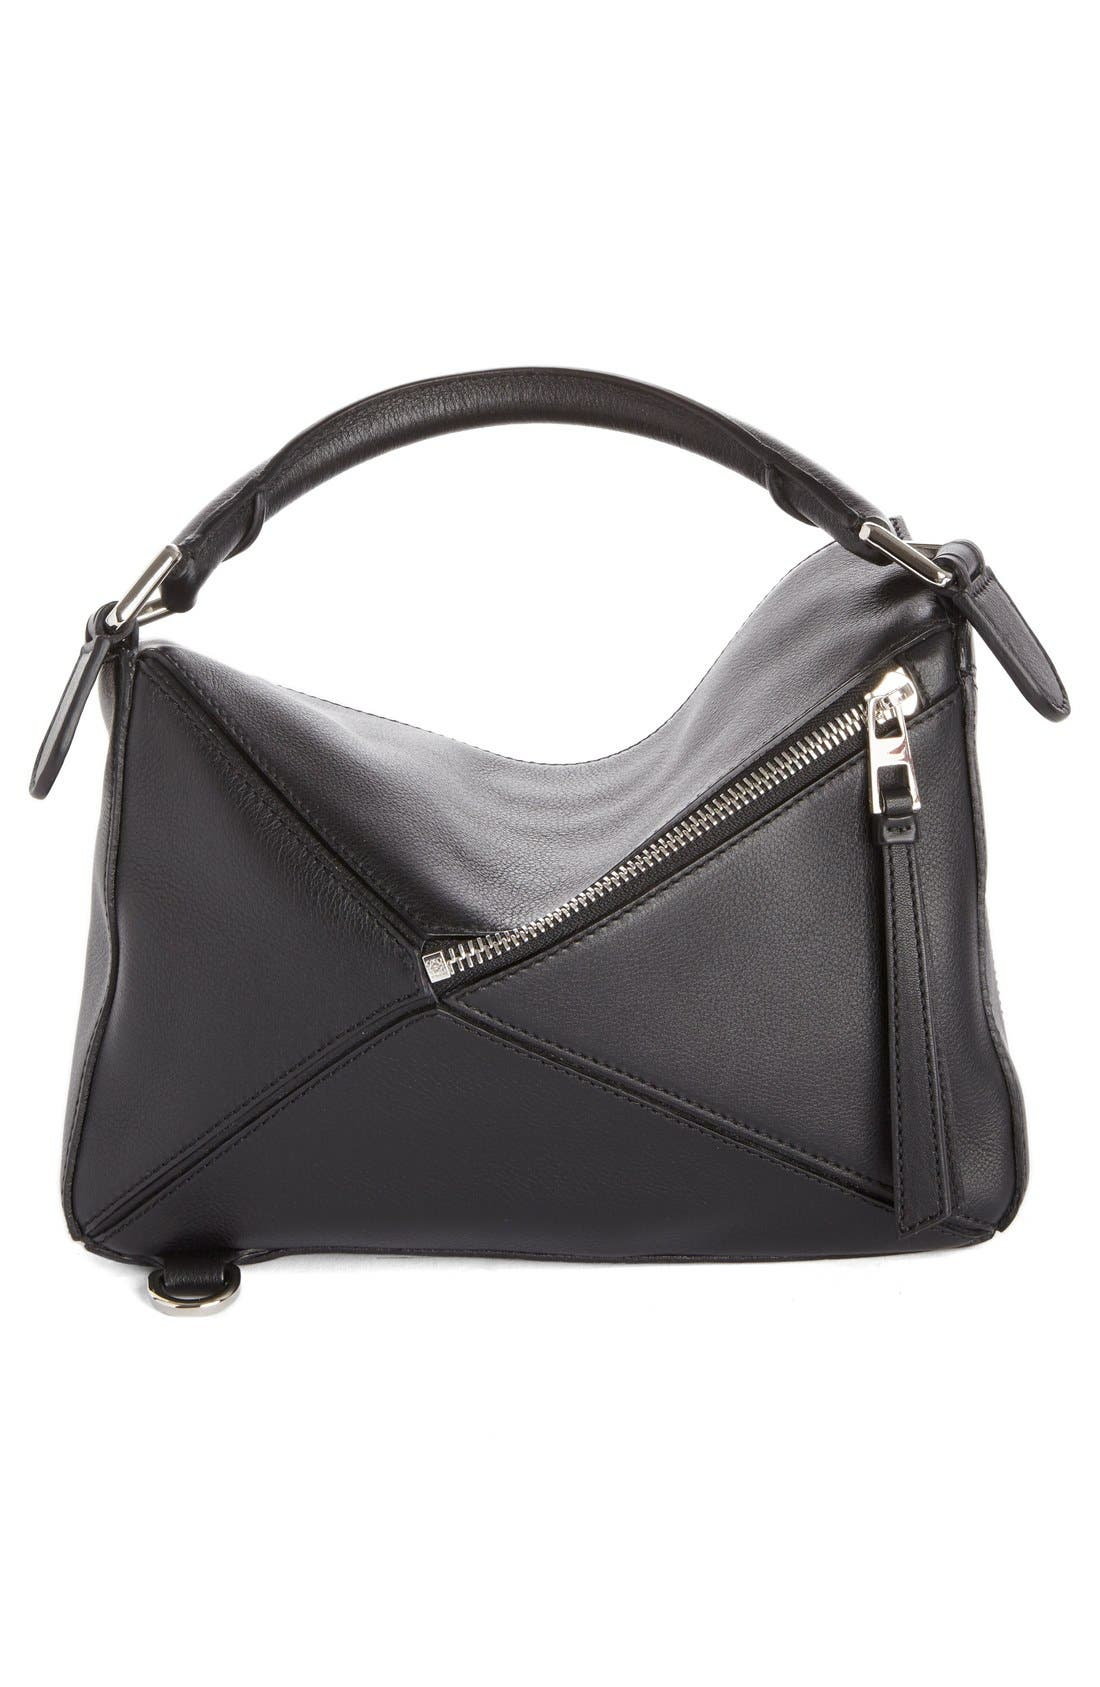 'Small Puzzle' Calfskin Leather Bag,                             Alternate thumbnail 2, color,                             Black